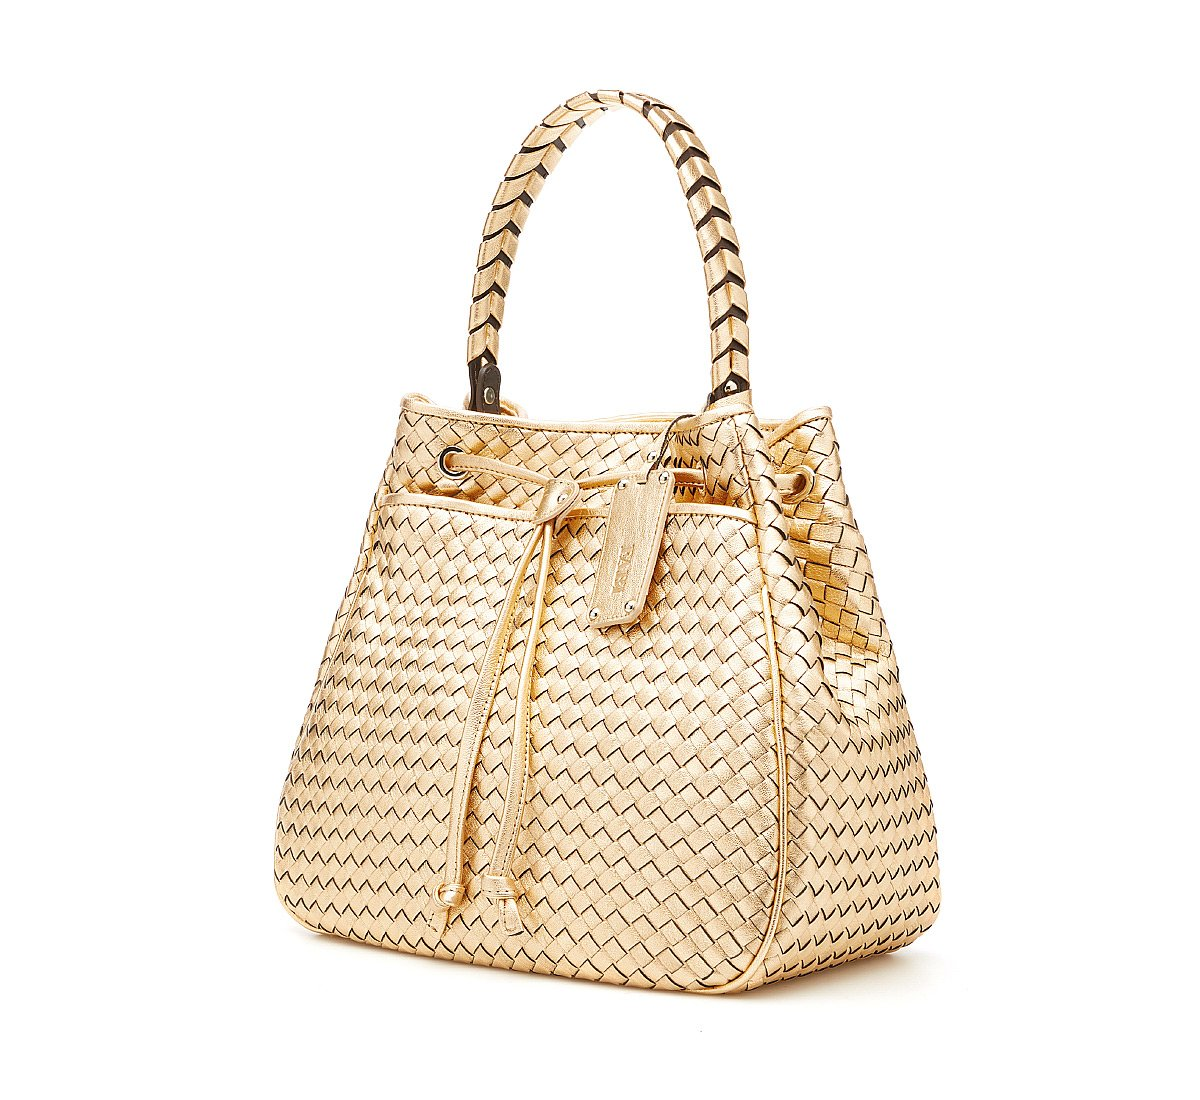 Wicker calf leather bag